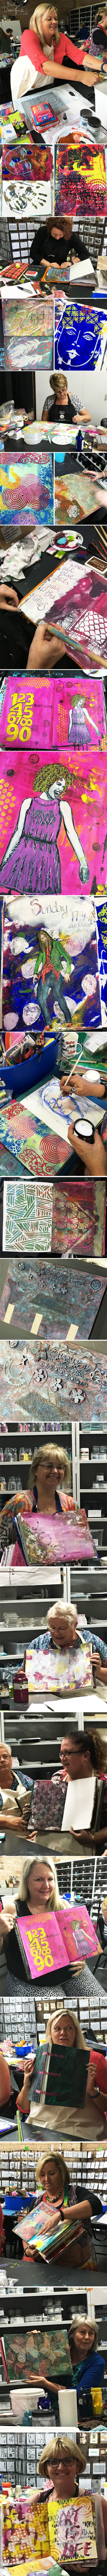 From the Balzer Designs Blog: Mixed Media Circus at Darkroom Door